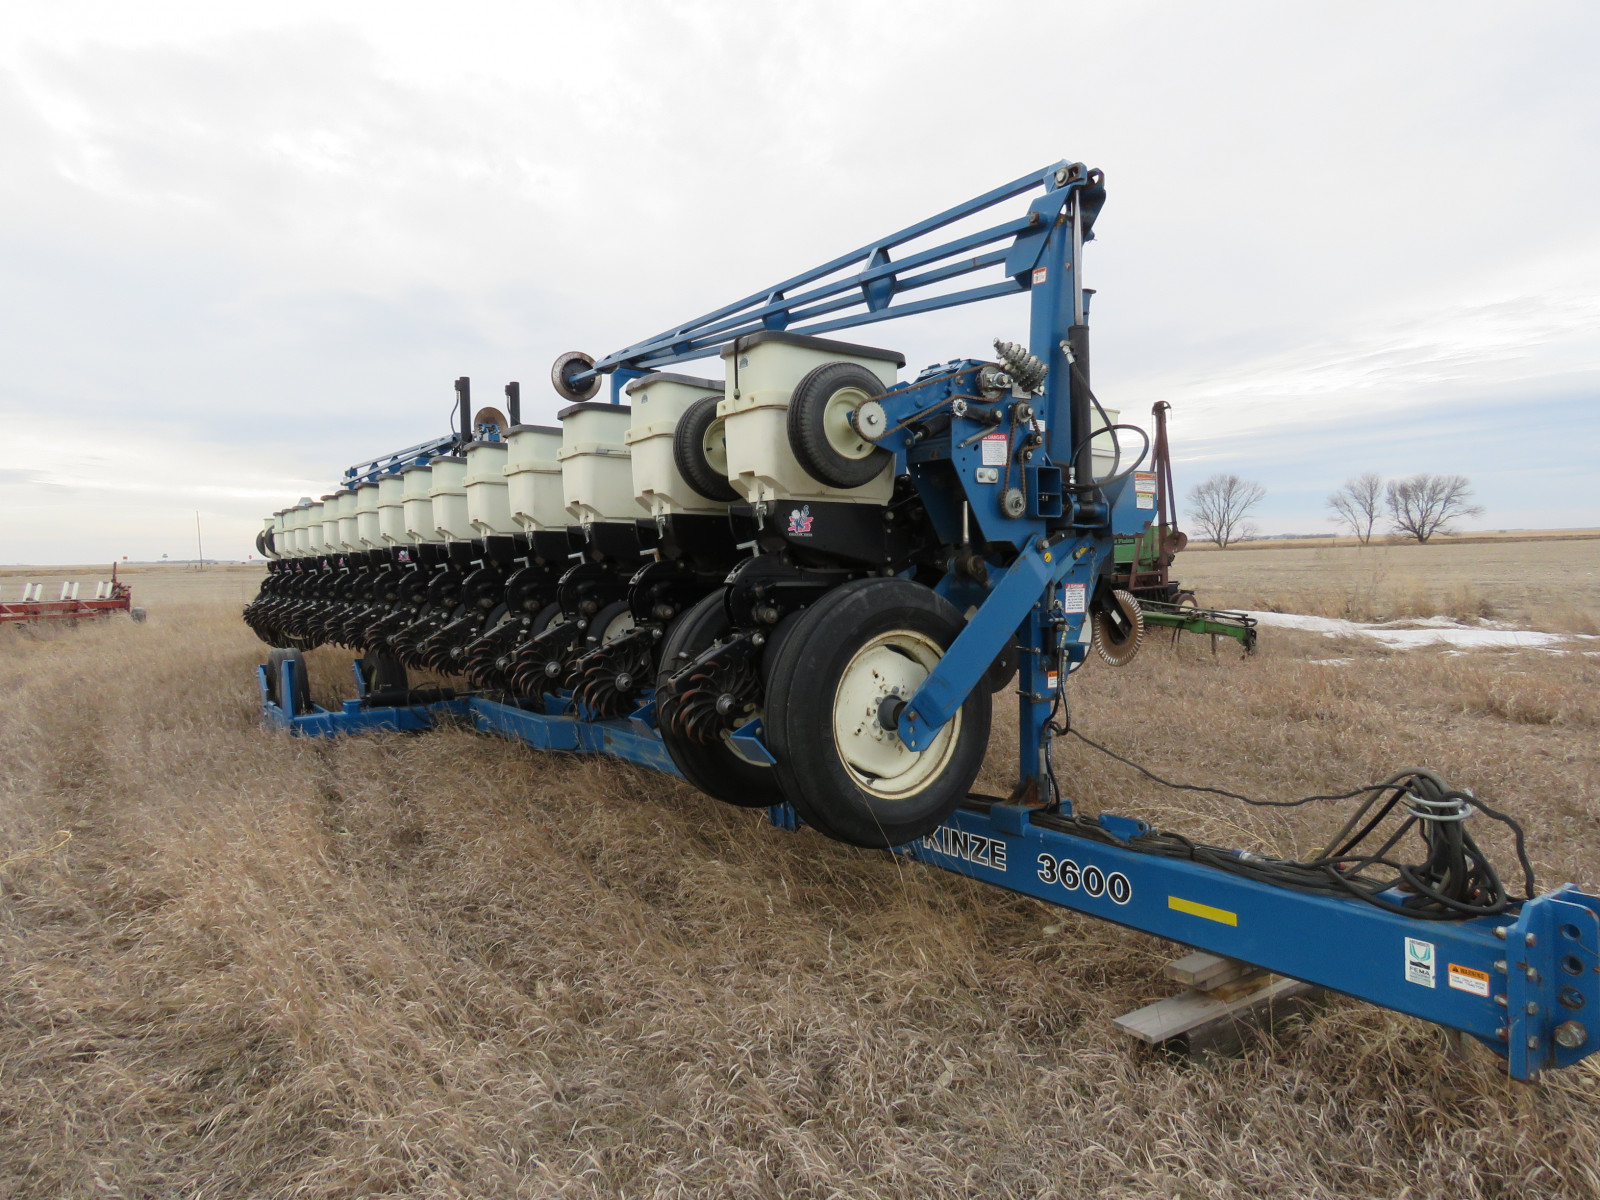 2004 Kinze 3600 16 Row Planter - Image 1